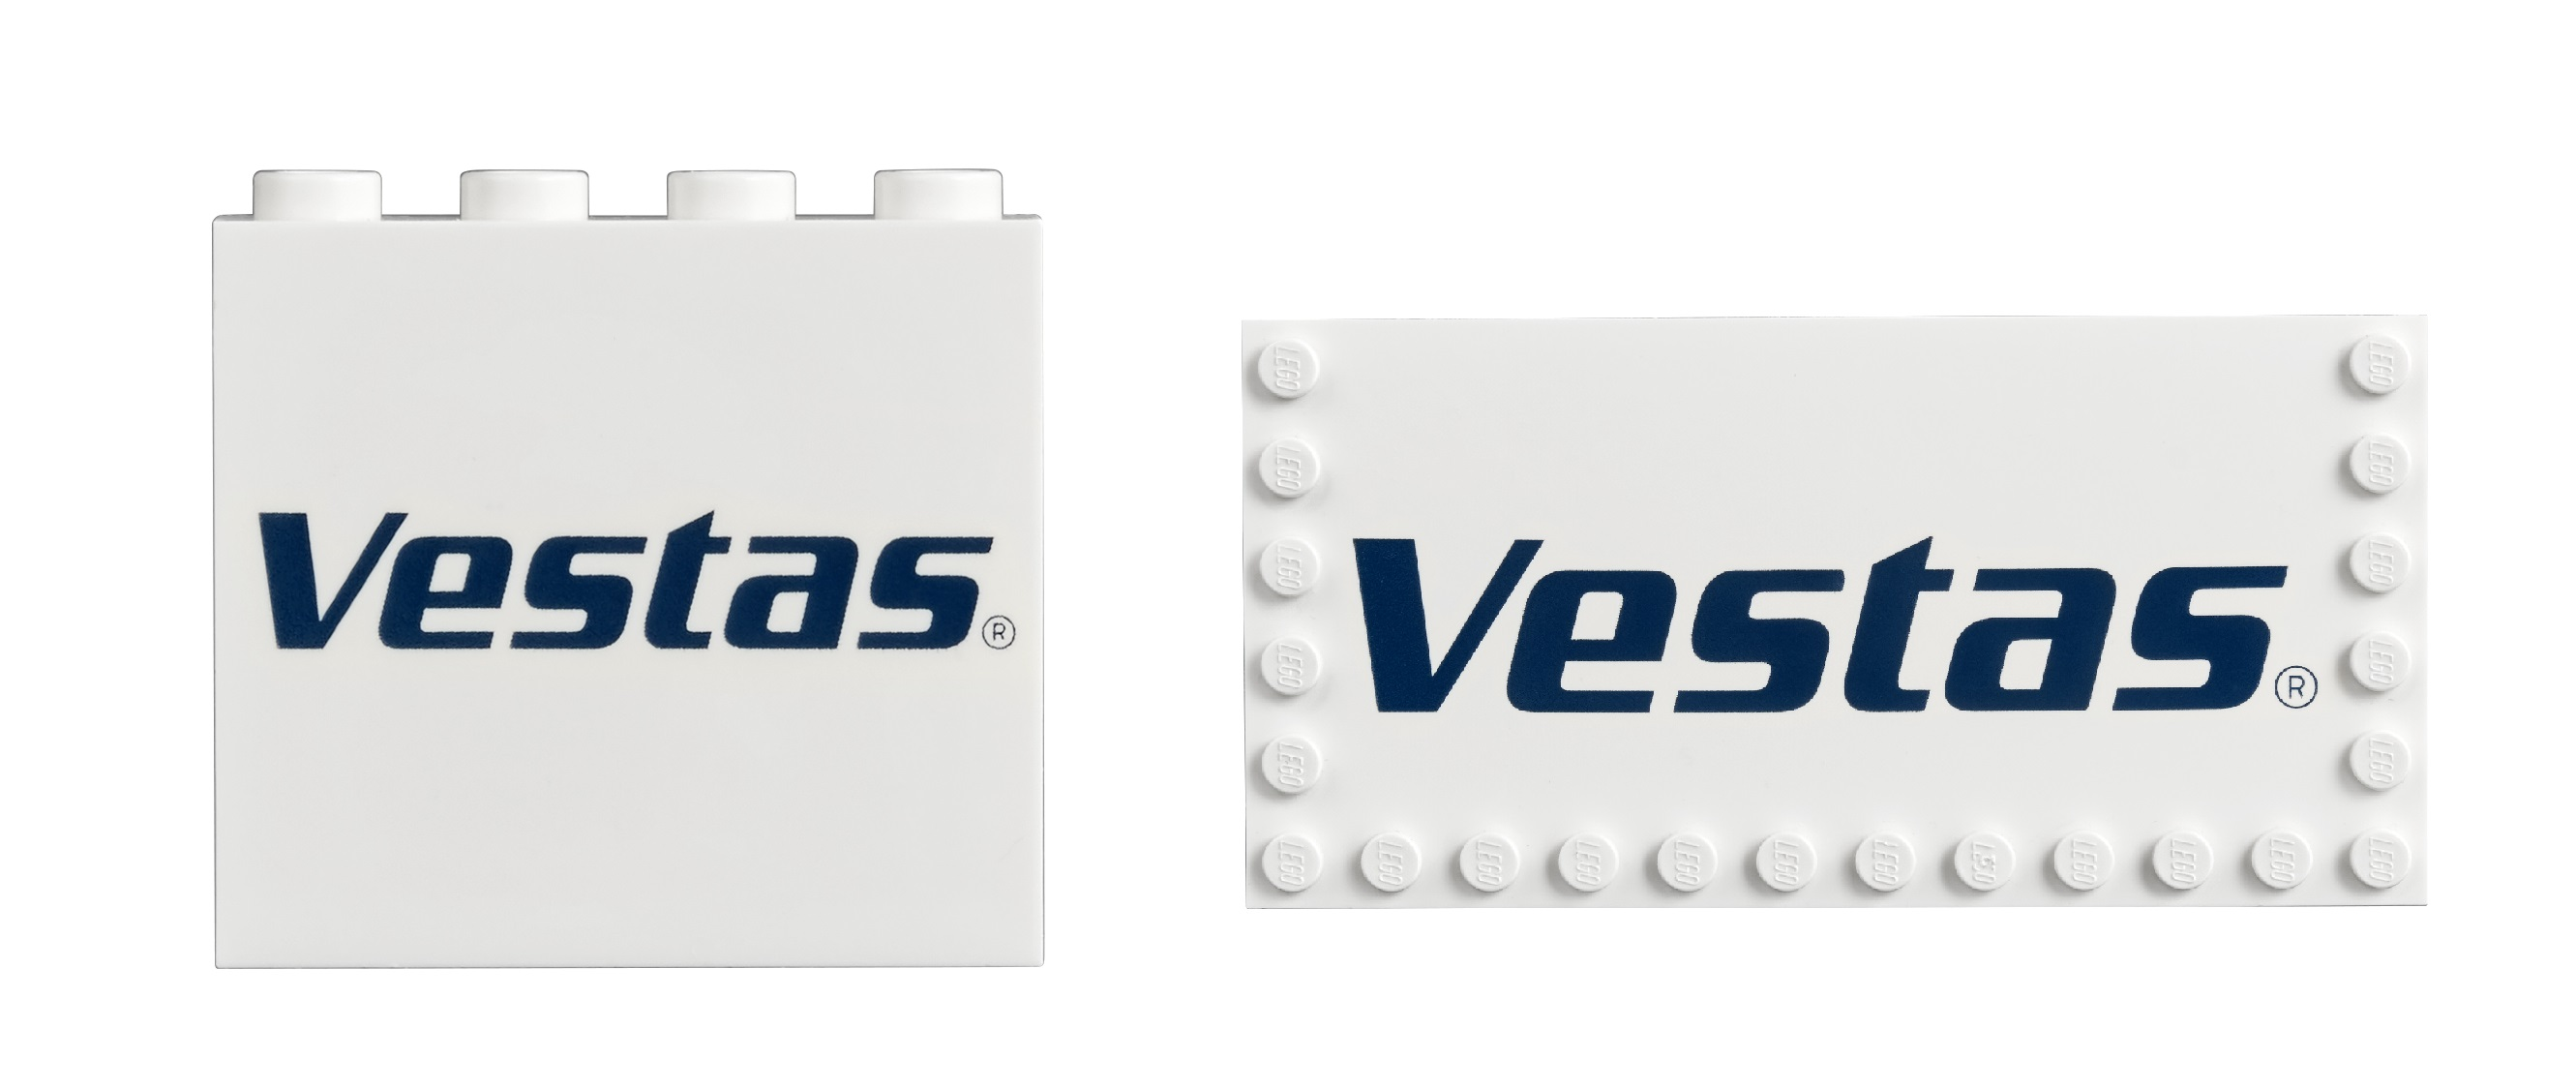 LEGO dials up its sustainability initiatives with the re-release of